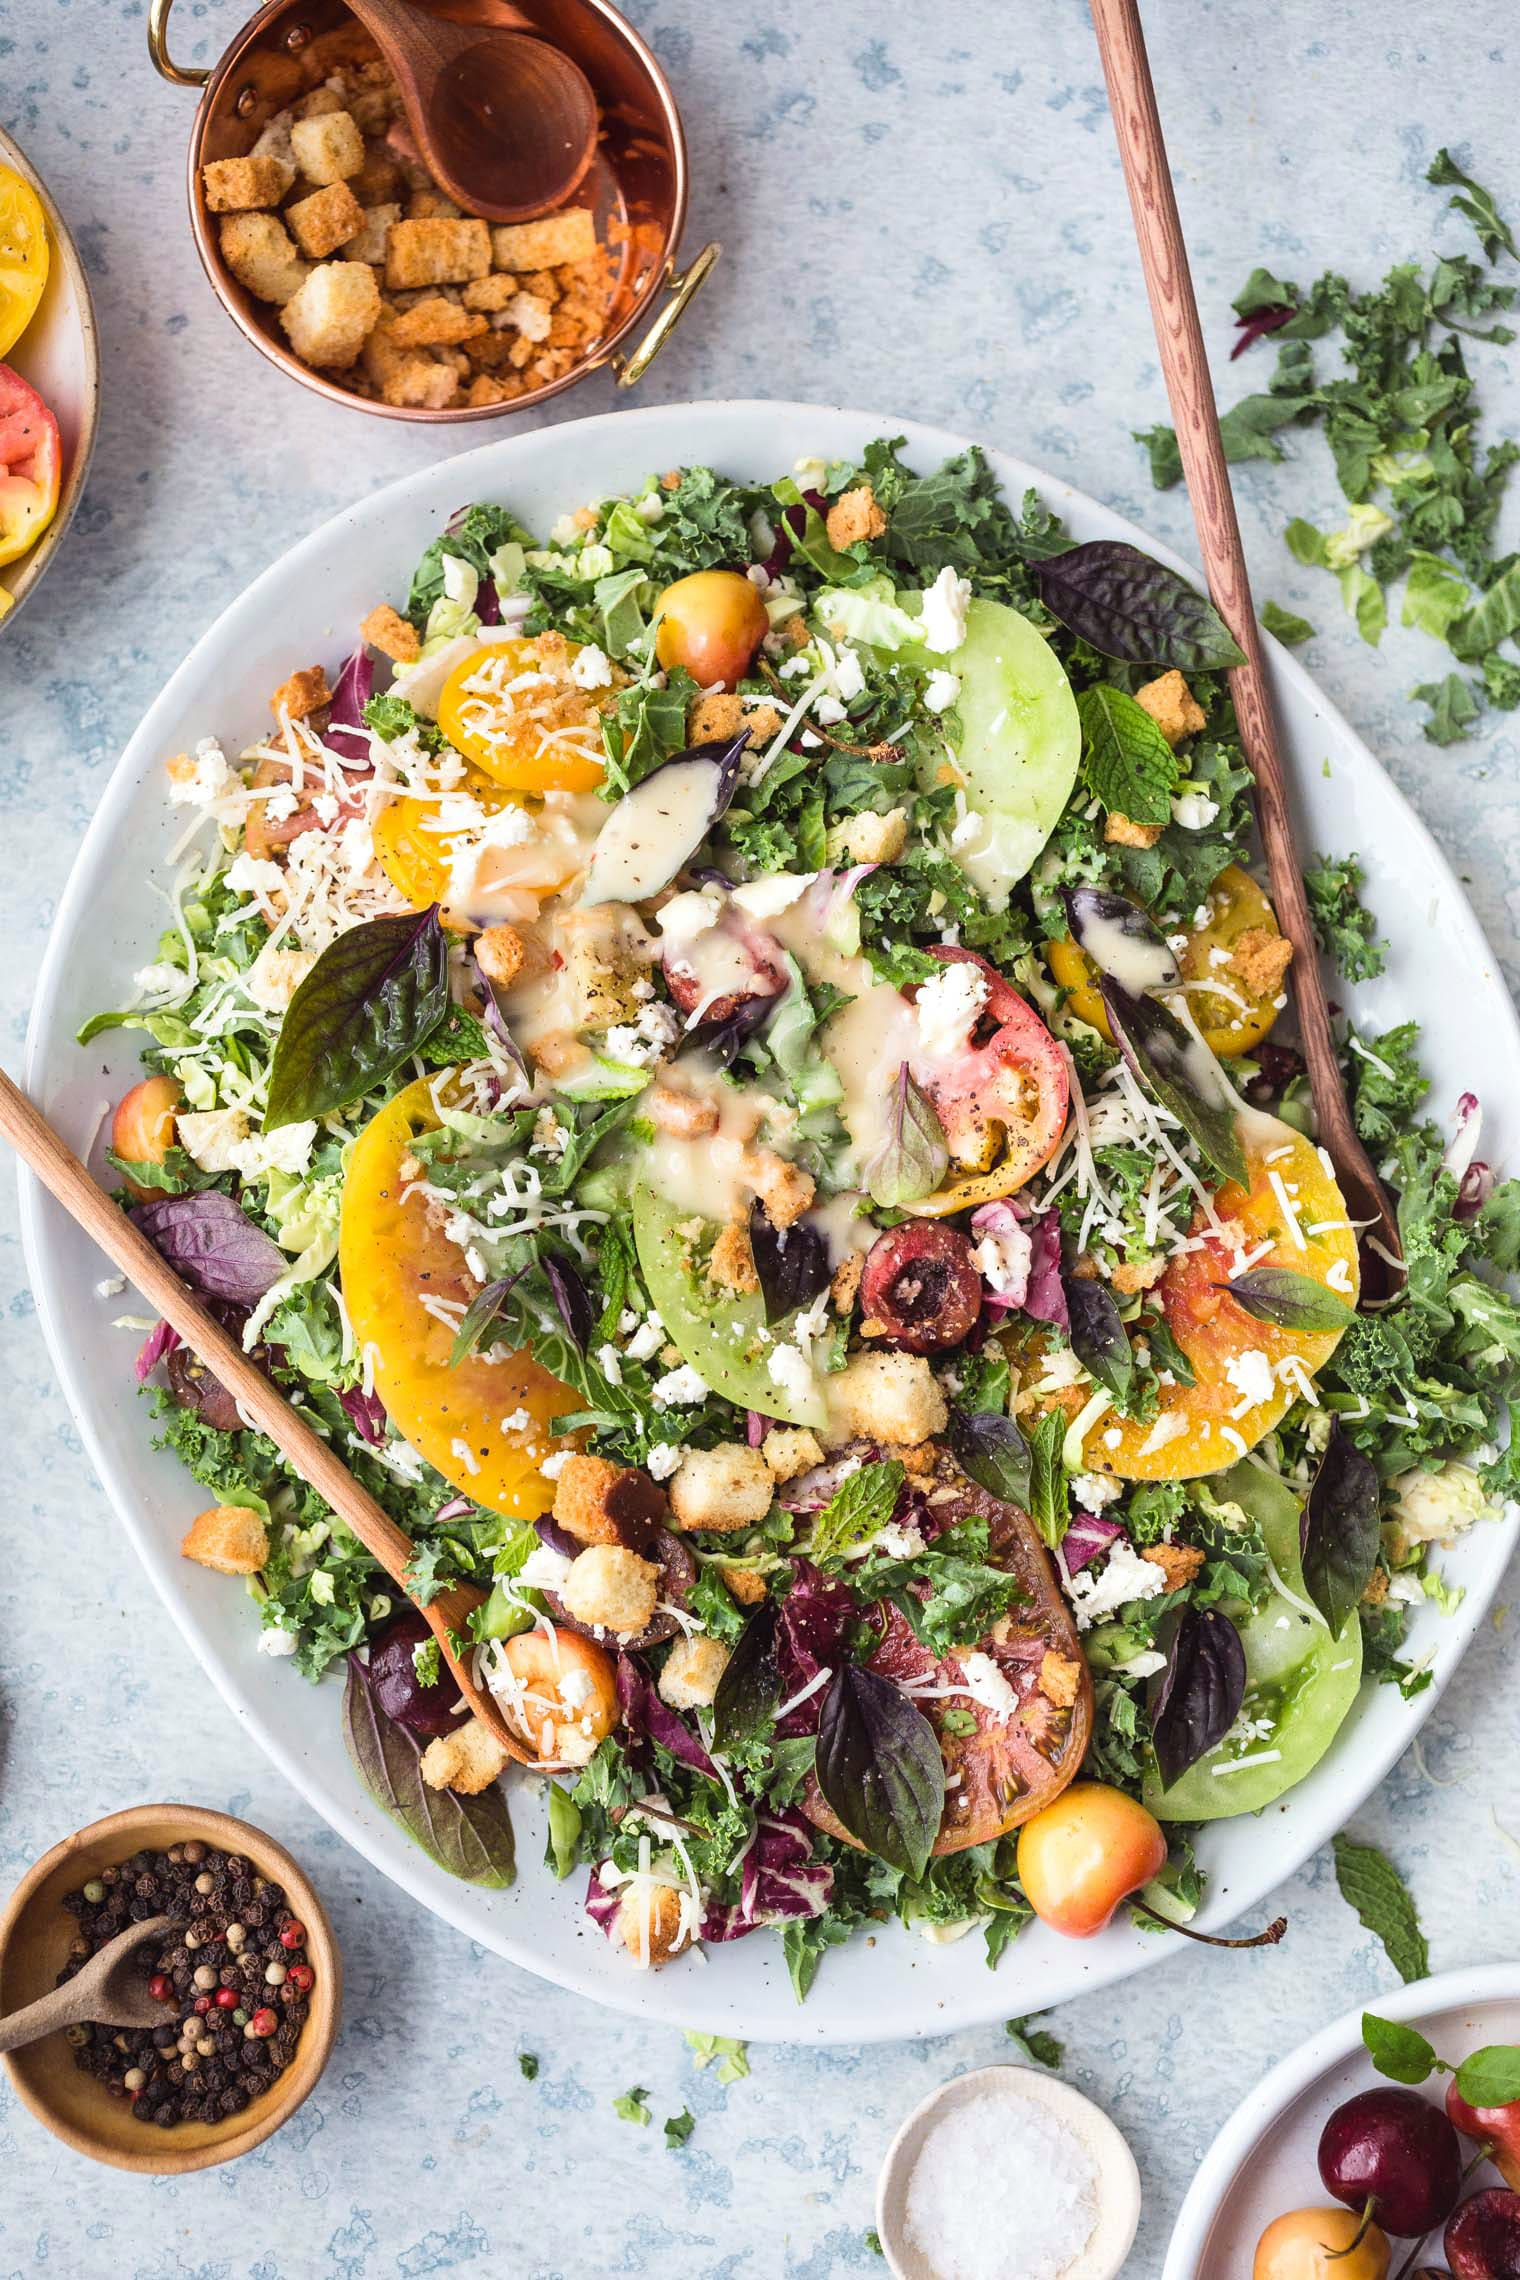 Tomato & Cherry Kale Salad with Lemon Vinaigrette